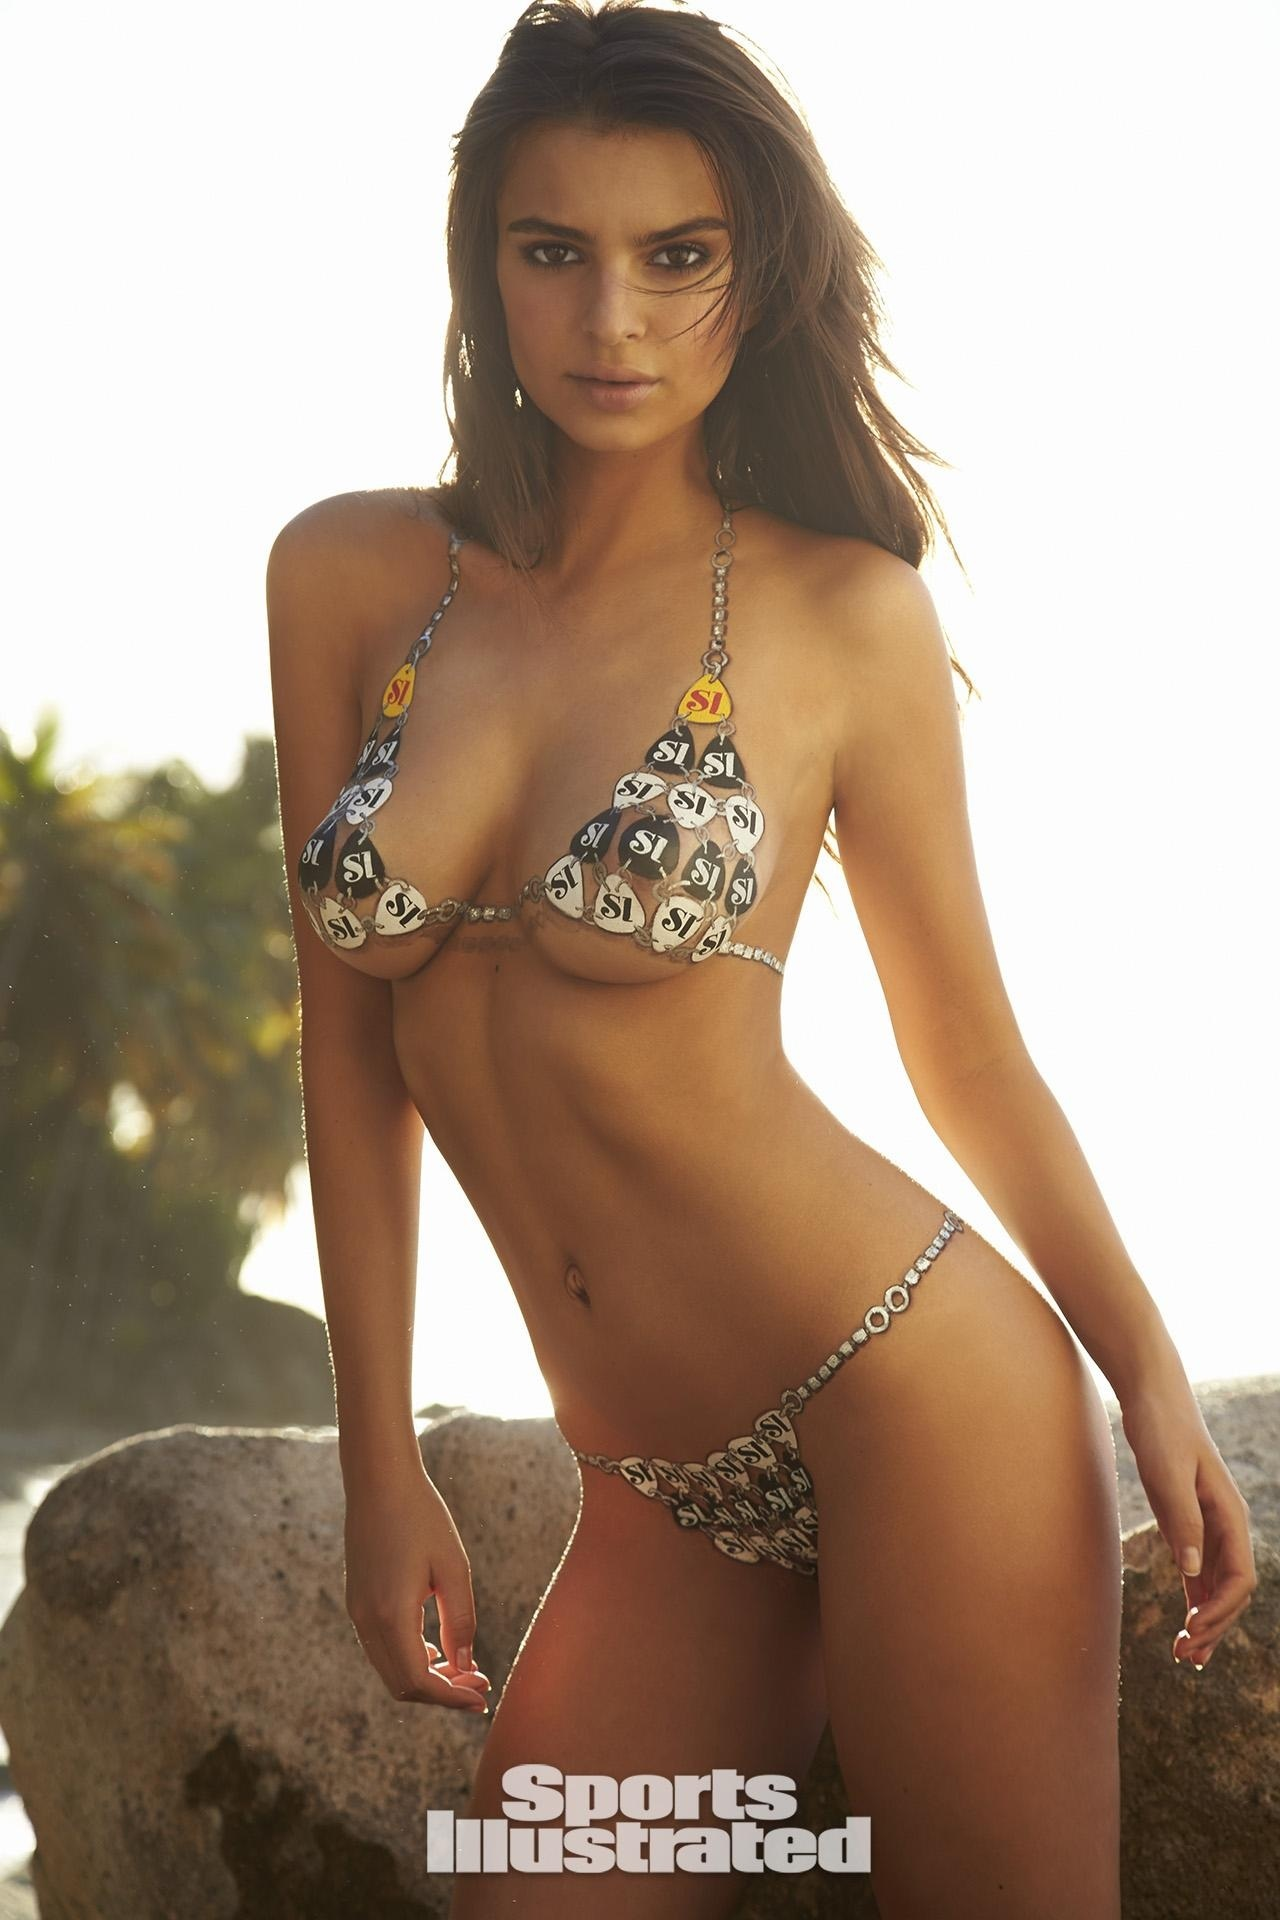 Emily Ratajkowski Bodypaint Sports Illustrated Itok Qjtvzg Emily Ratajkowski